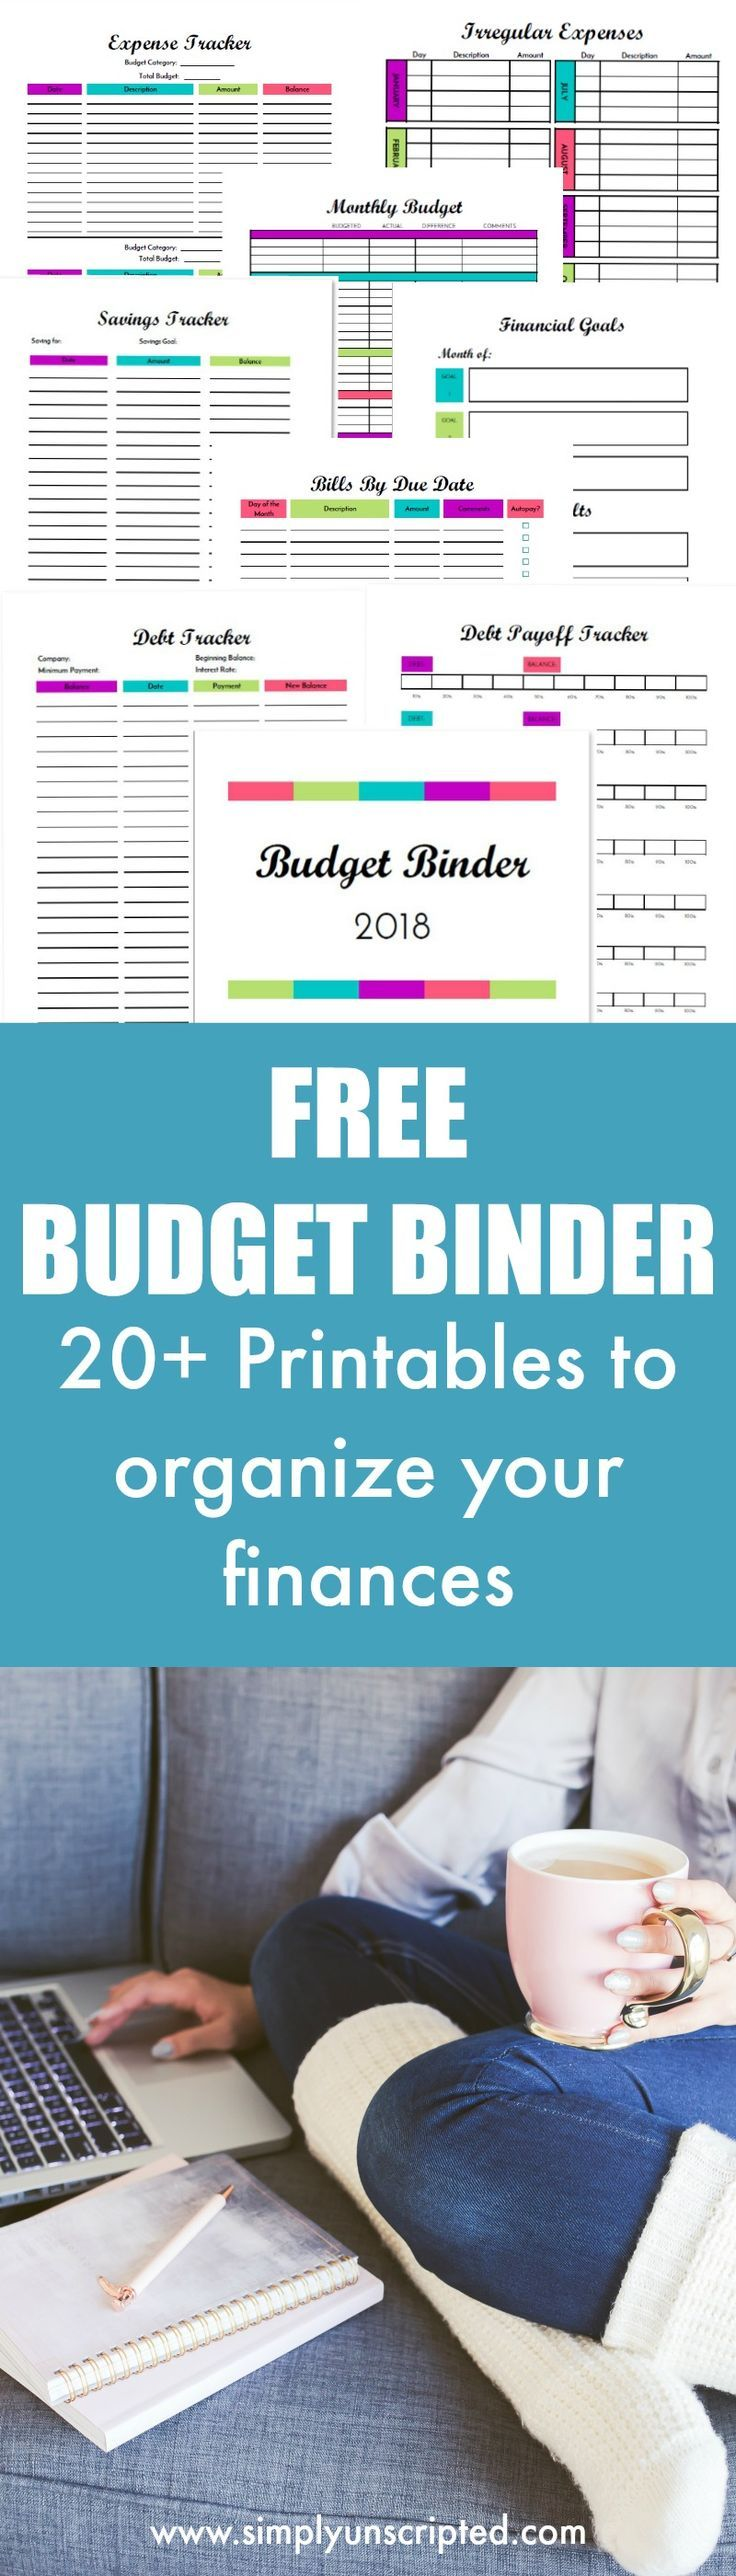 Inspirational FREE Budget Binder Printables To Organize Your Finances